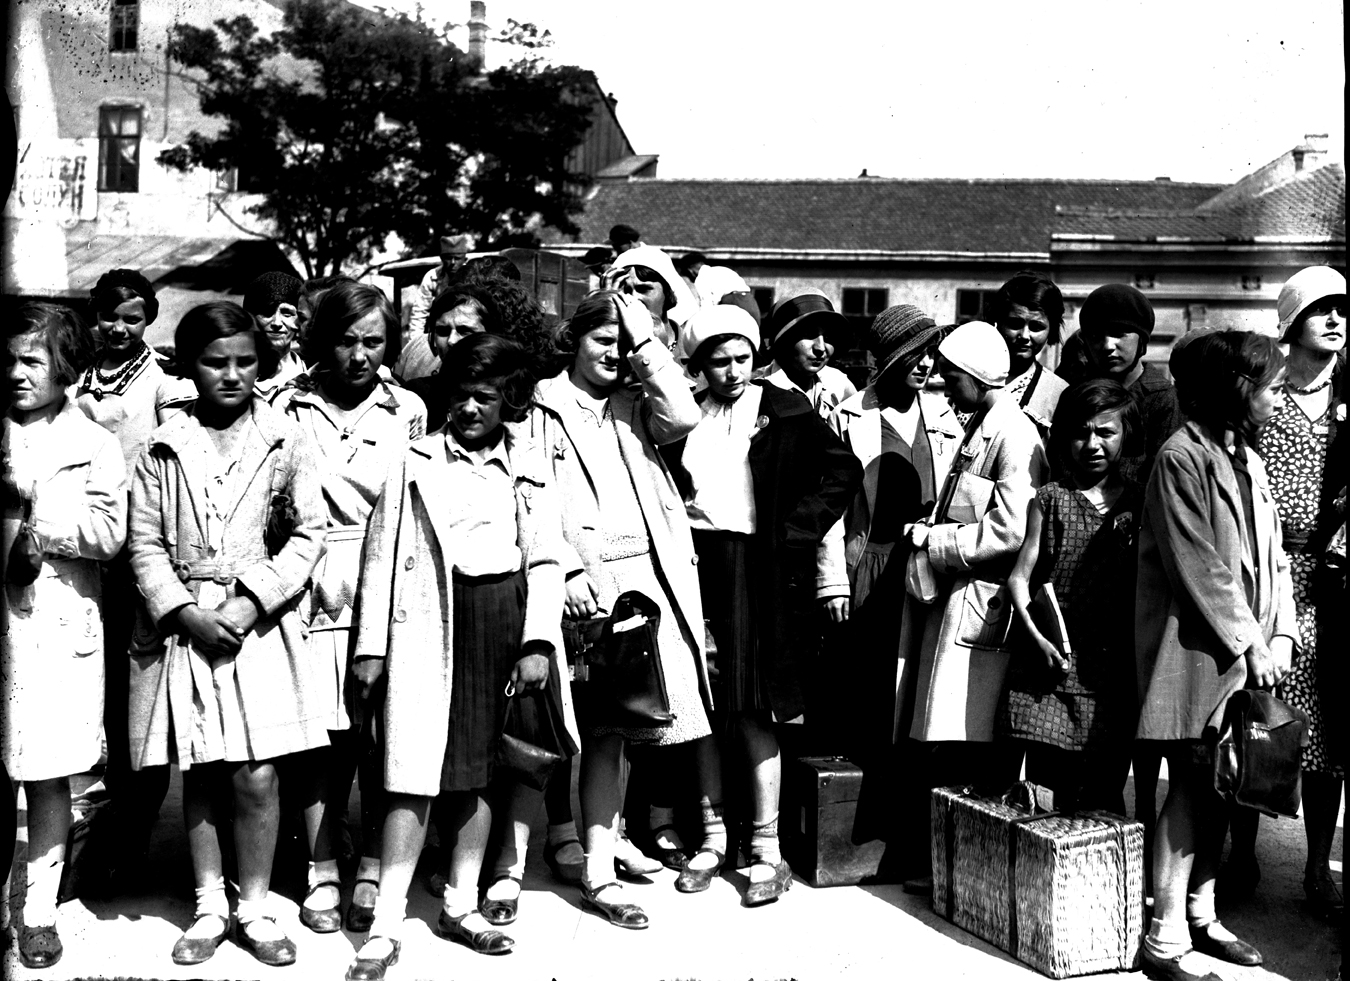 Schoolgirls waiting to depart, © Photoarchive Borba